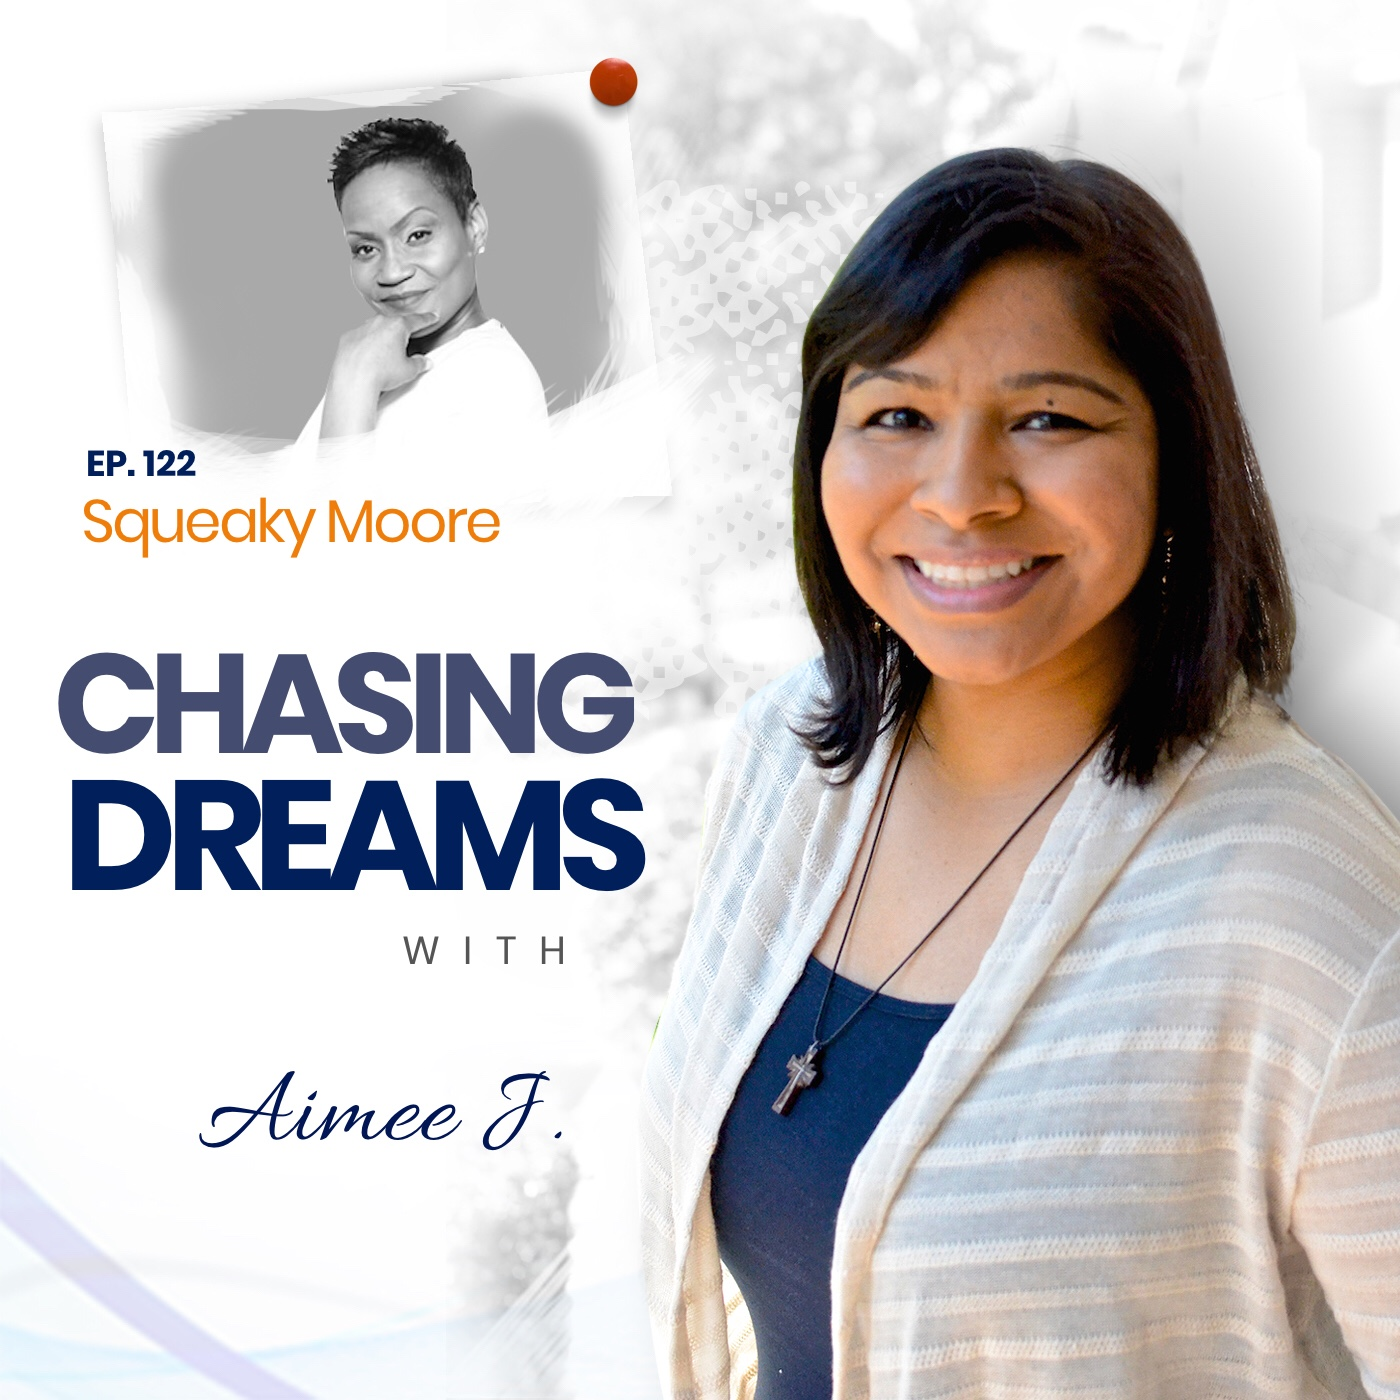 Squeaky Moore – Mistakes I've Made So You Don't Have To (Chasing Dreams with Aimee J.)